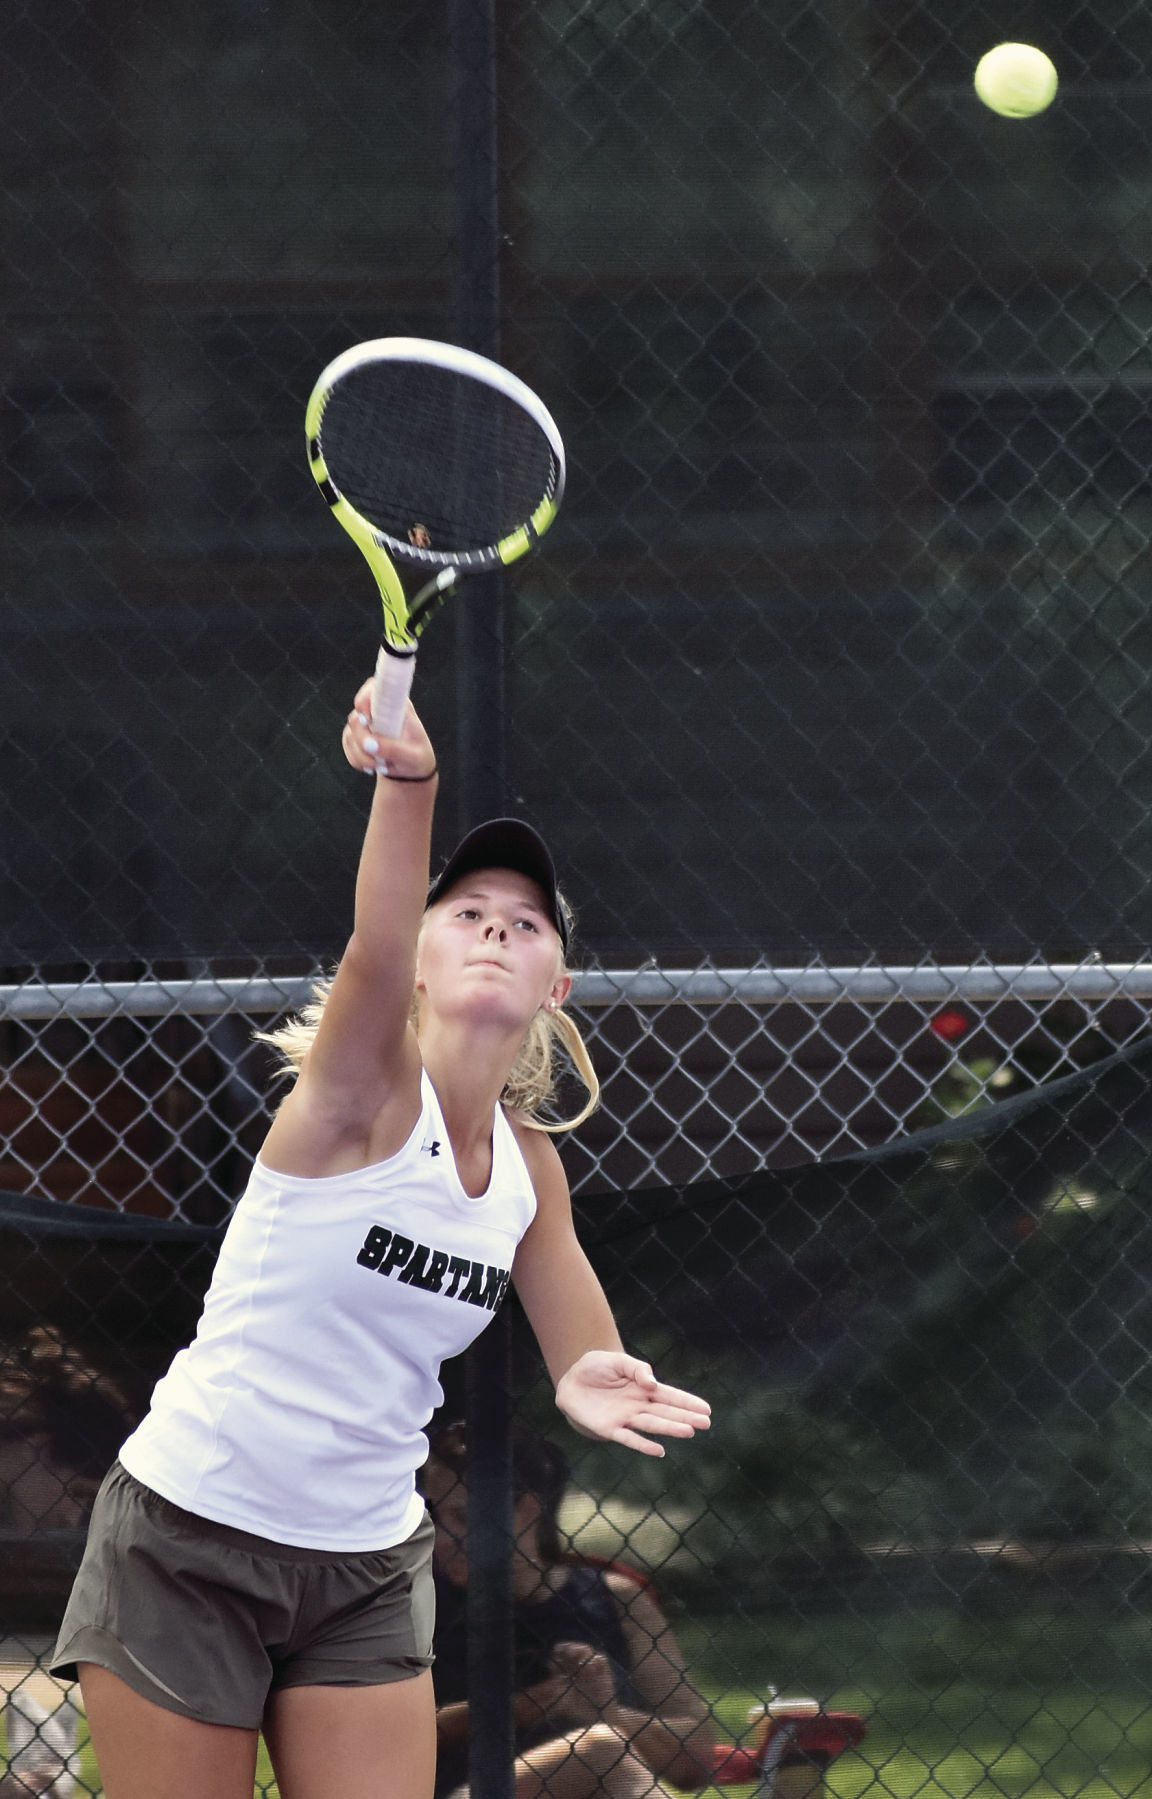 Prep girls tennis photo: Madison Memorial No. 1 singles player Grace Olson